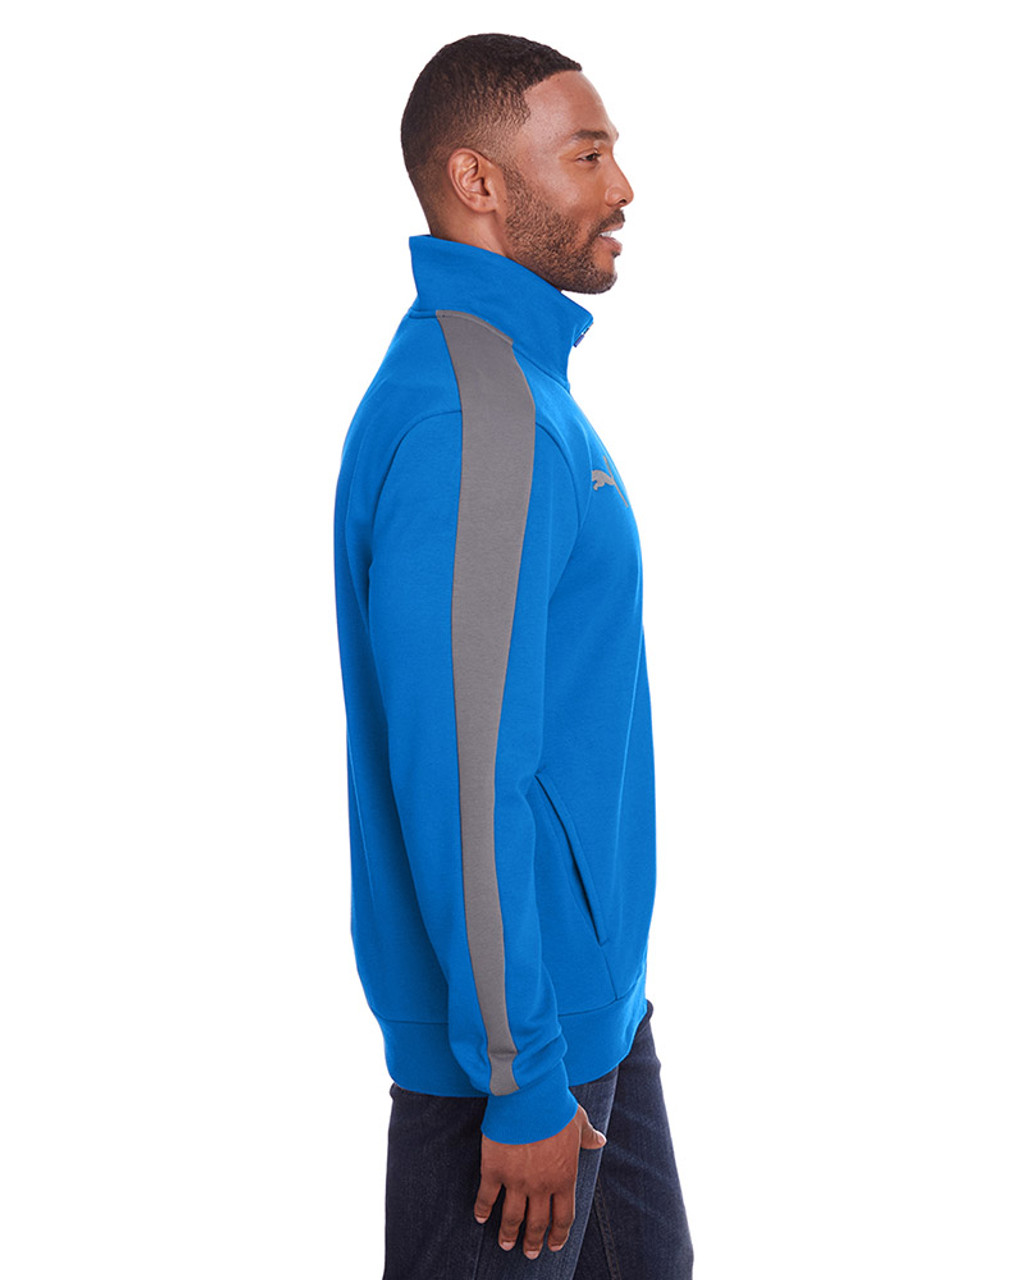 Lapis Blue/Quiet Shade - side, 597021 Puma Sport Adult P48 Fleece Track Jacket | Blankclothing.ca